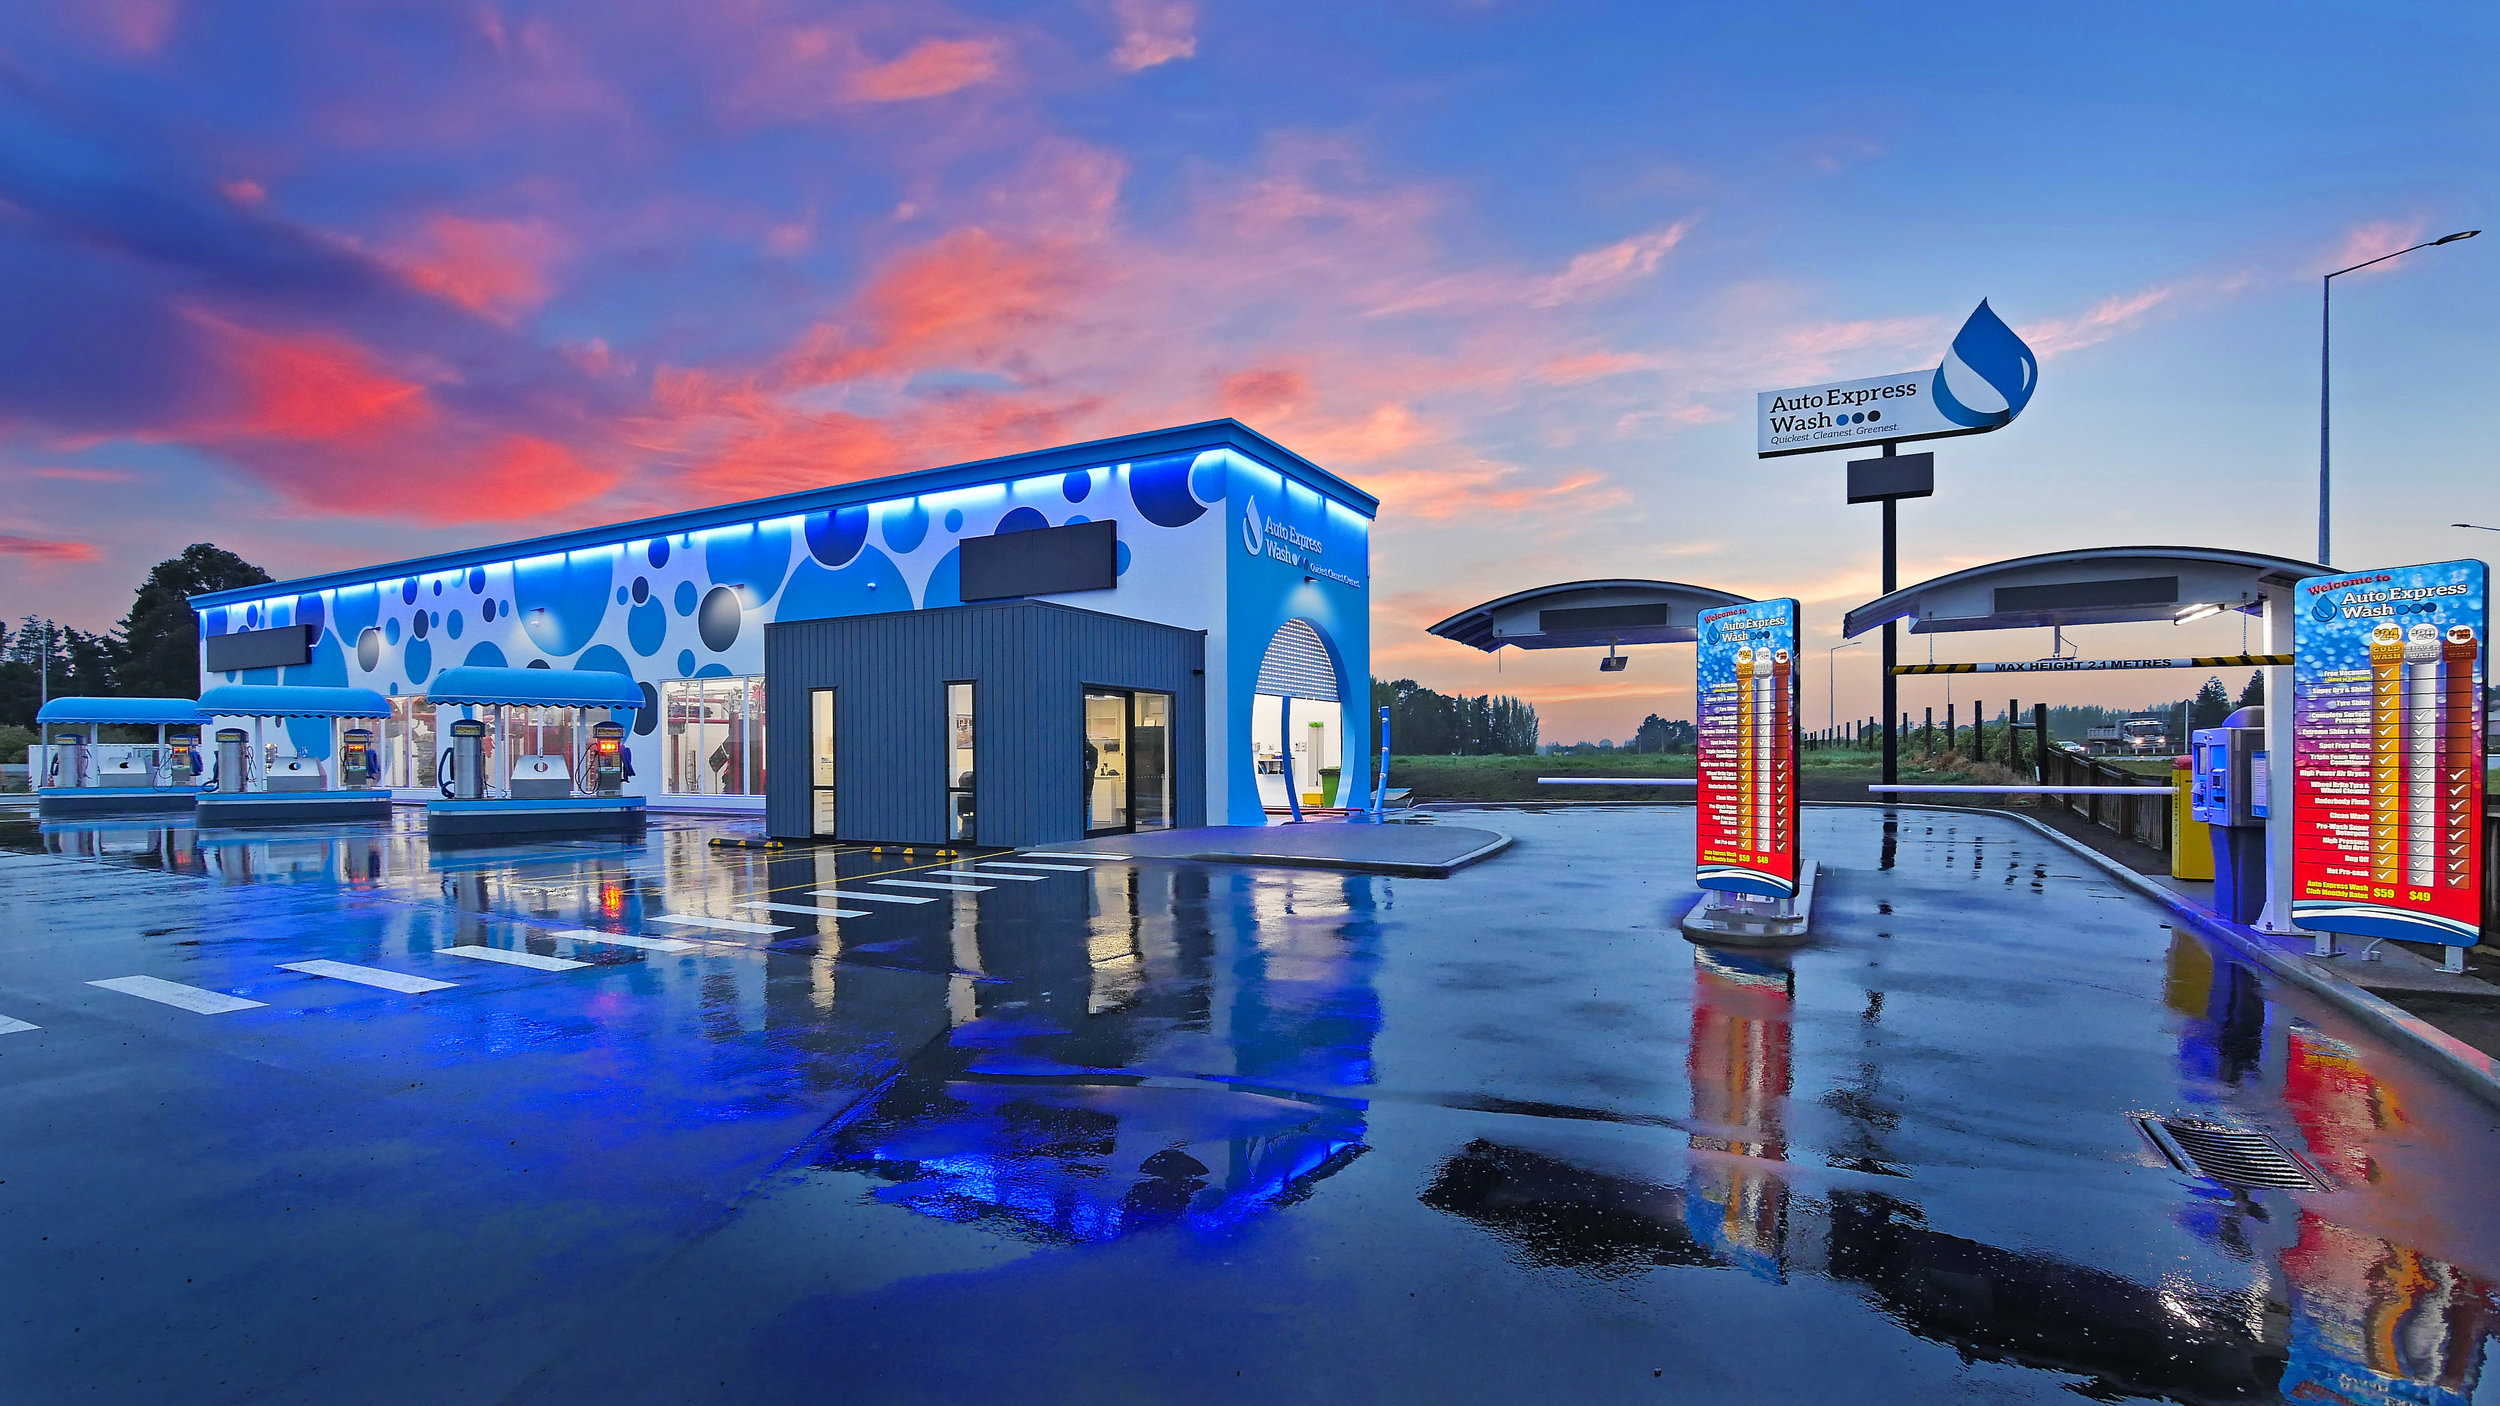 Auto express car wash New Zealand